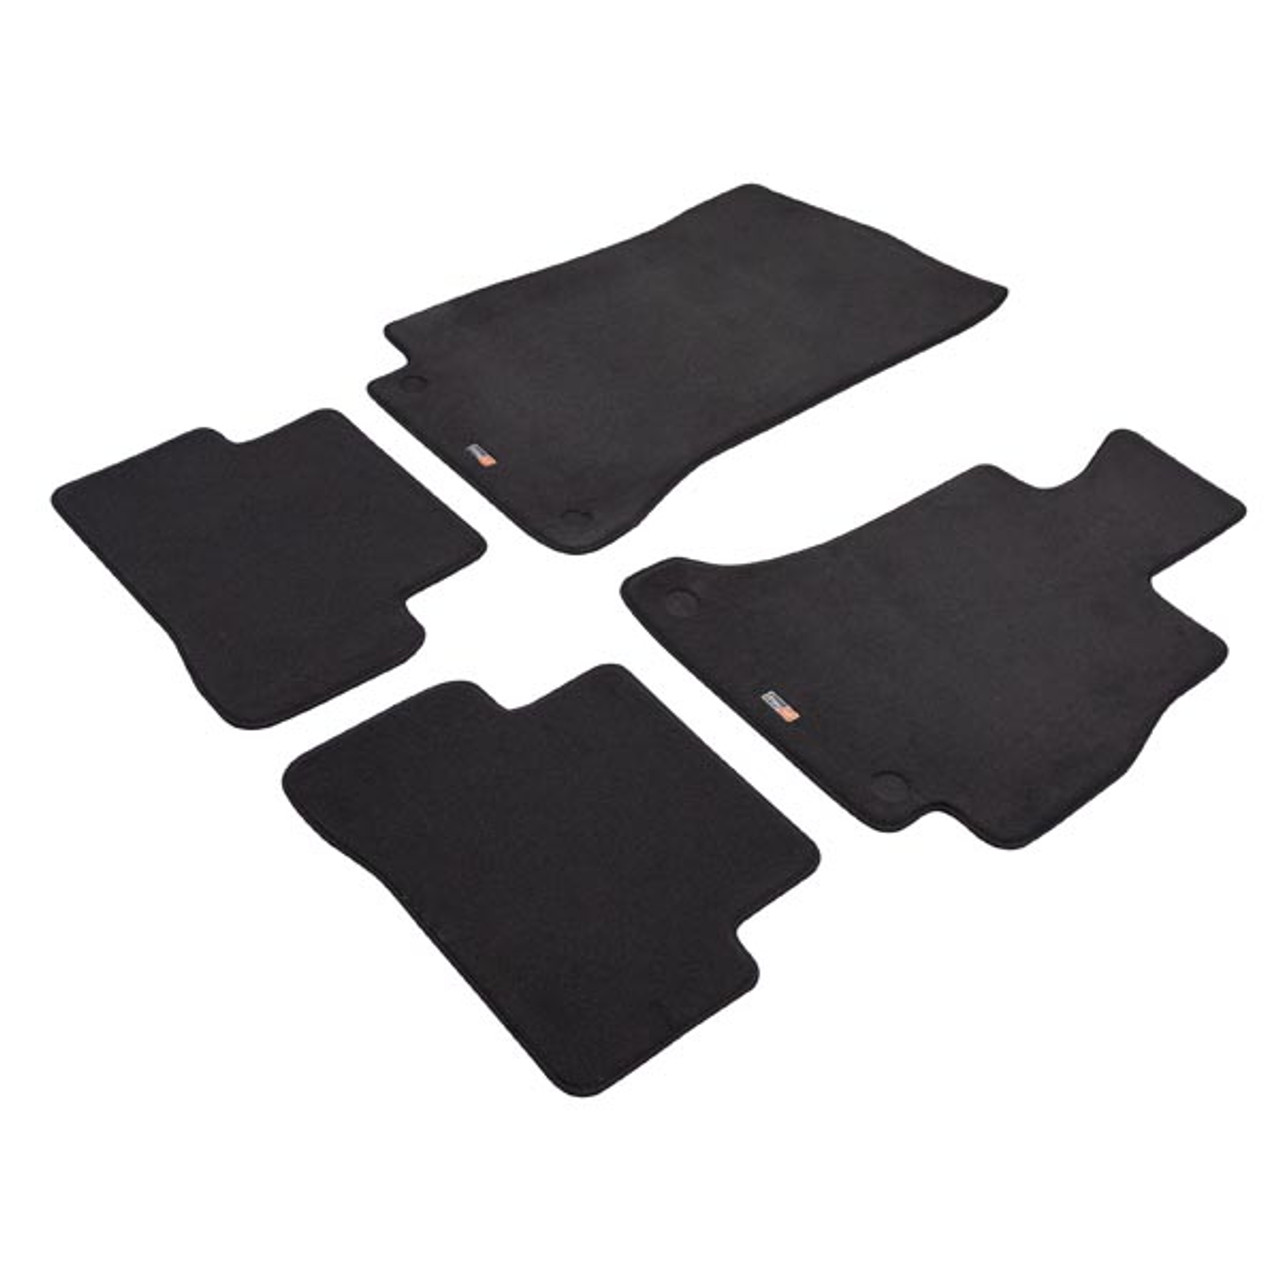 Custom Made Carpet Car Mats For Mercedes-Benz C-Class 2018 onwards